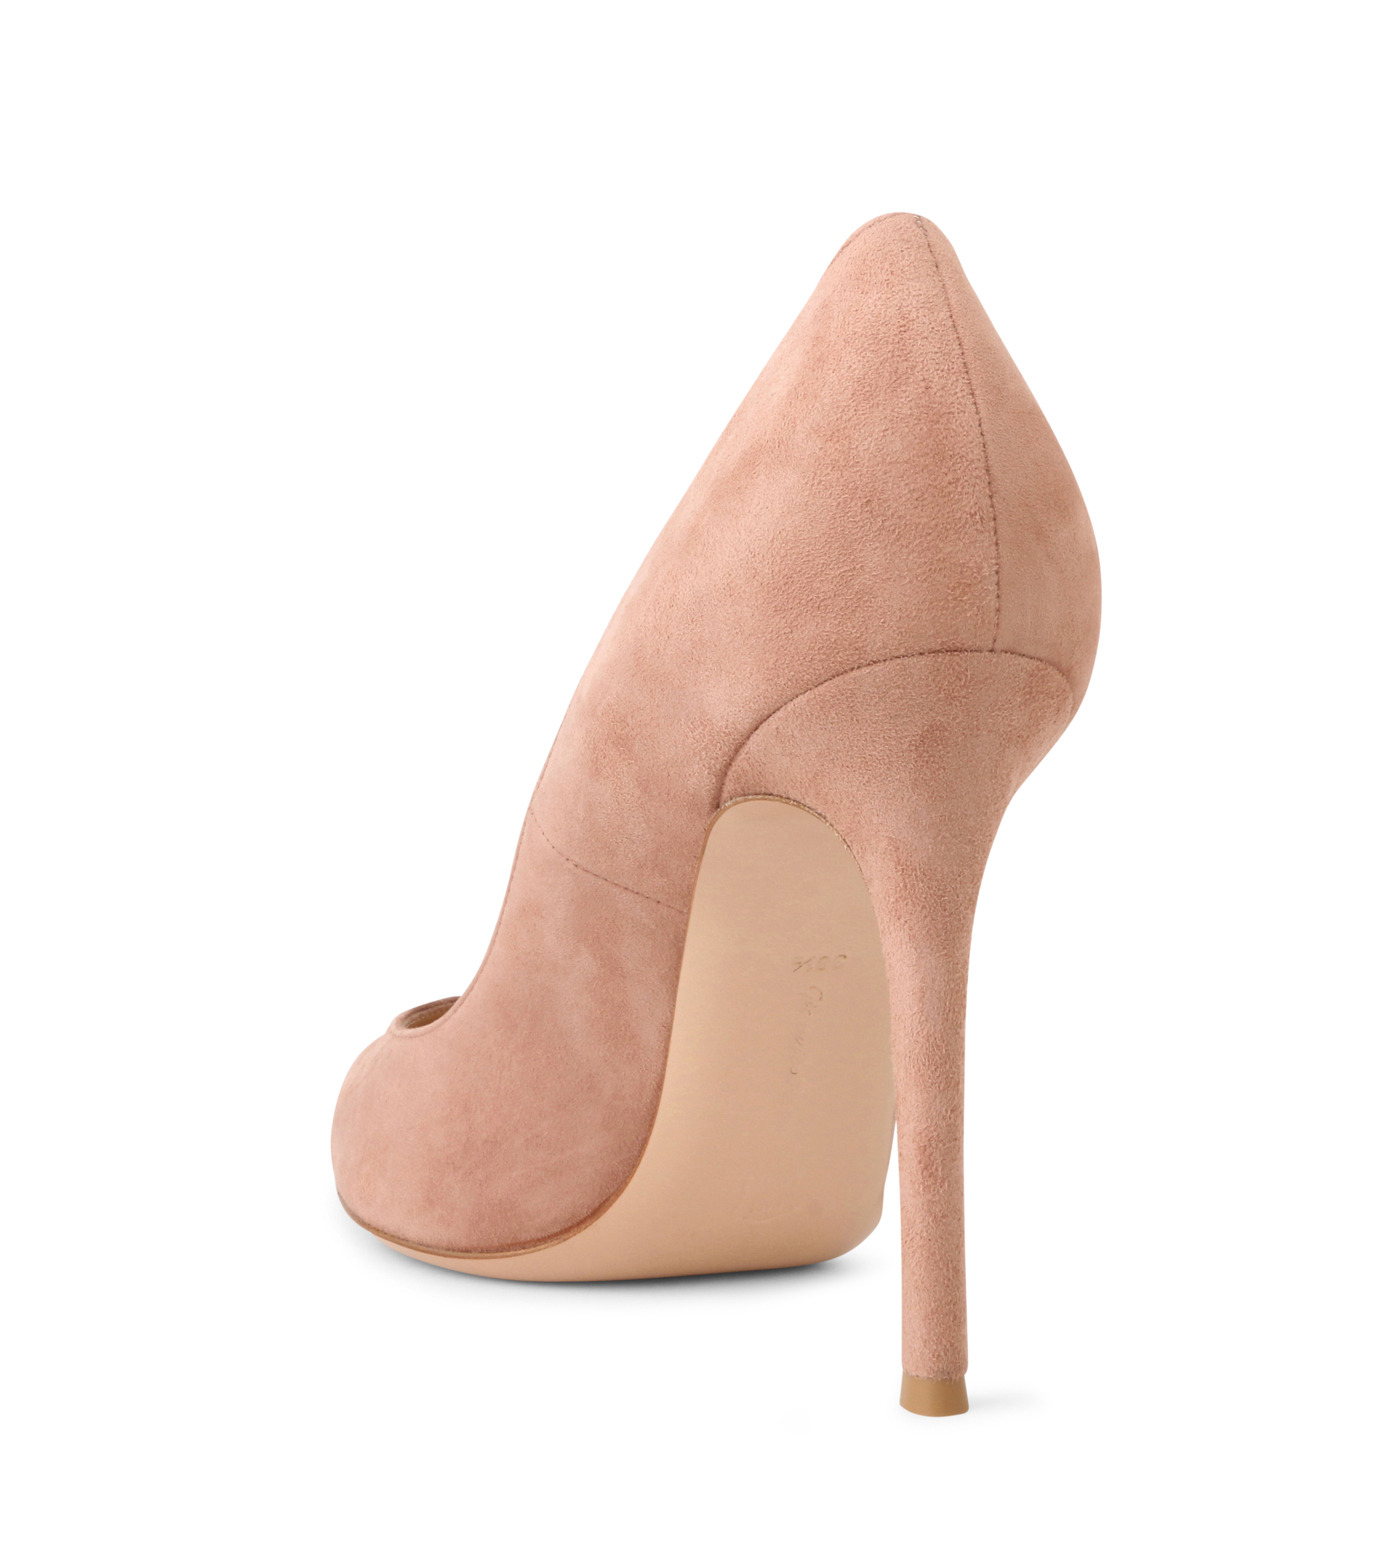 Gianvito Rossi(ジャンヴィト ロッシ)のSuede Pump-LIGHT BEIGE(パンプス/pumps)-G28470-51 拡大詳細画像2